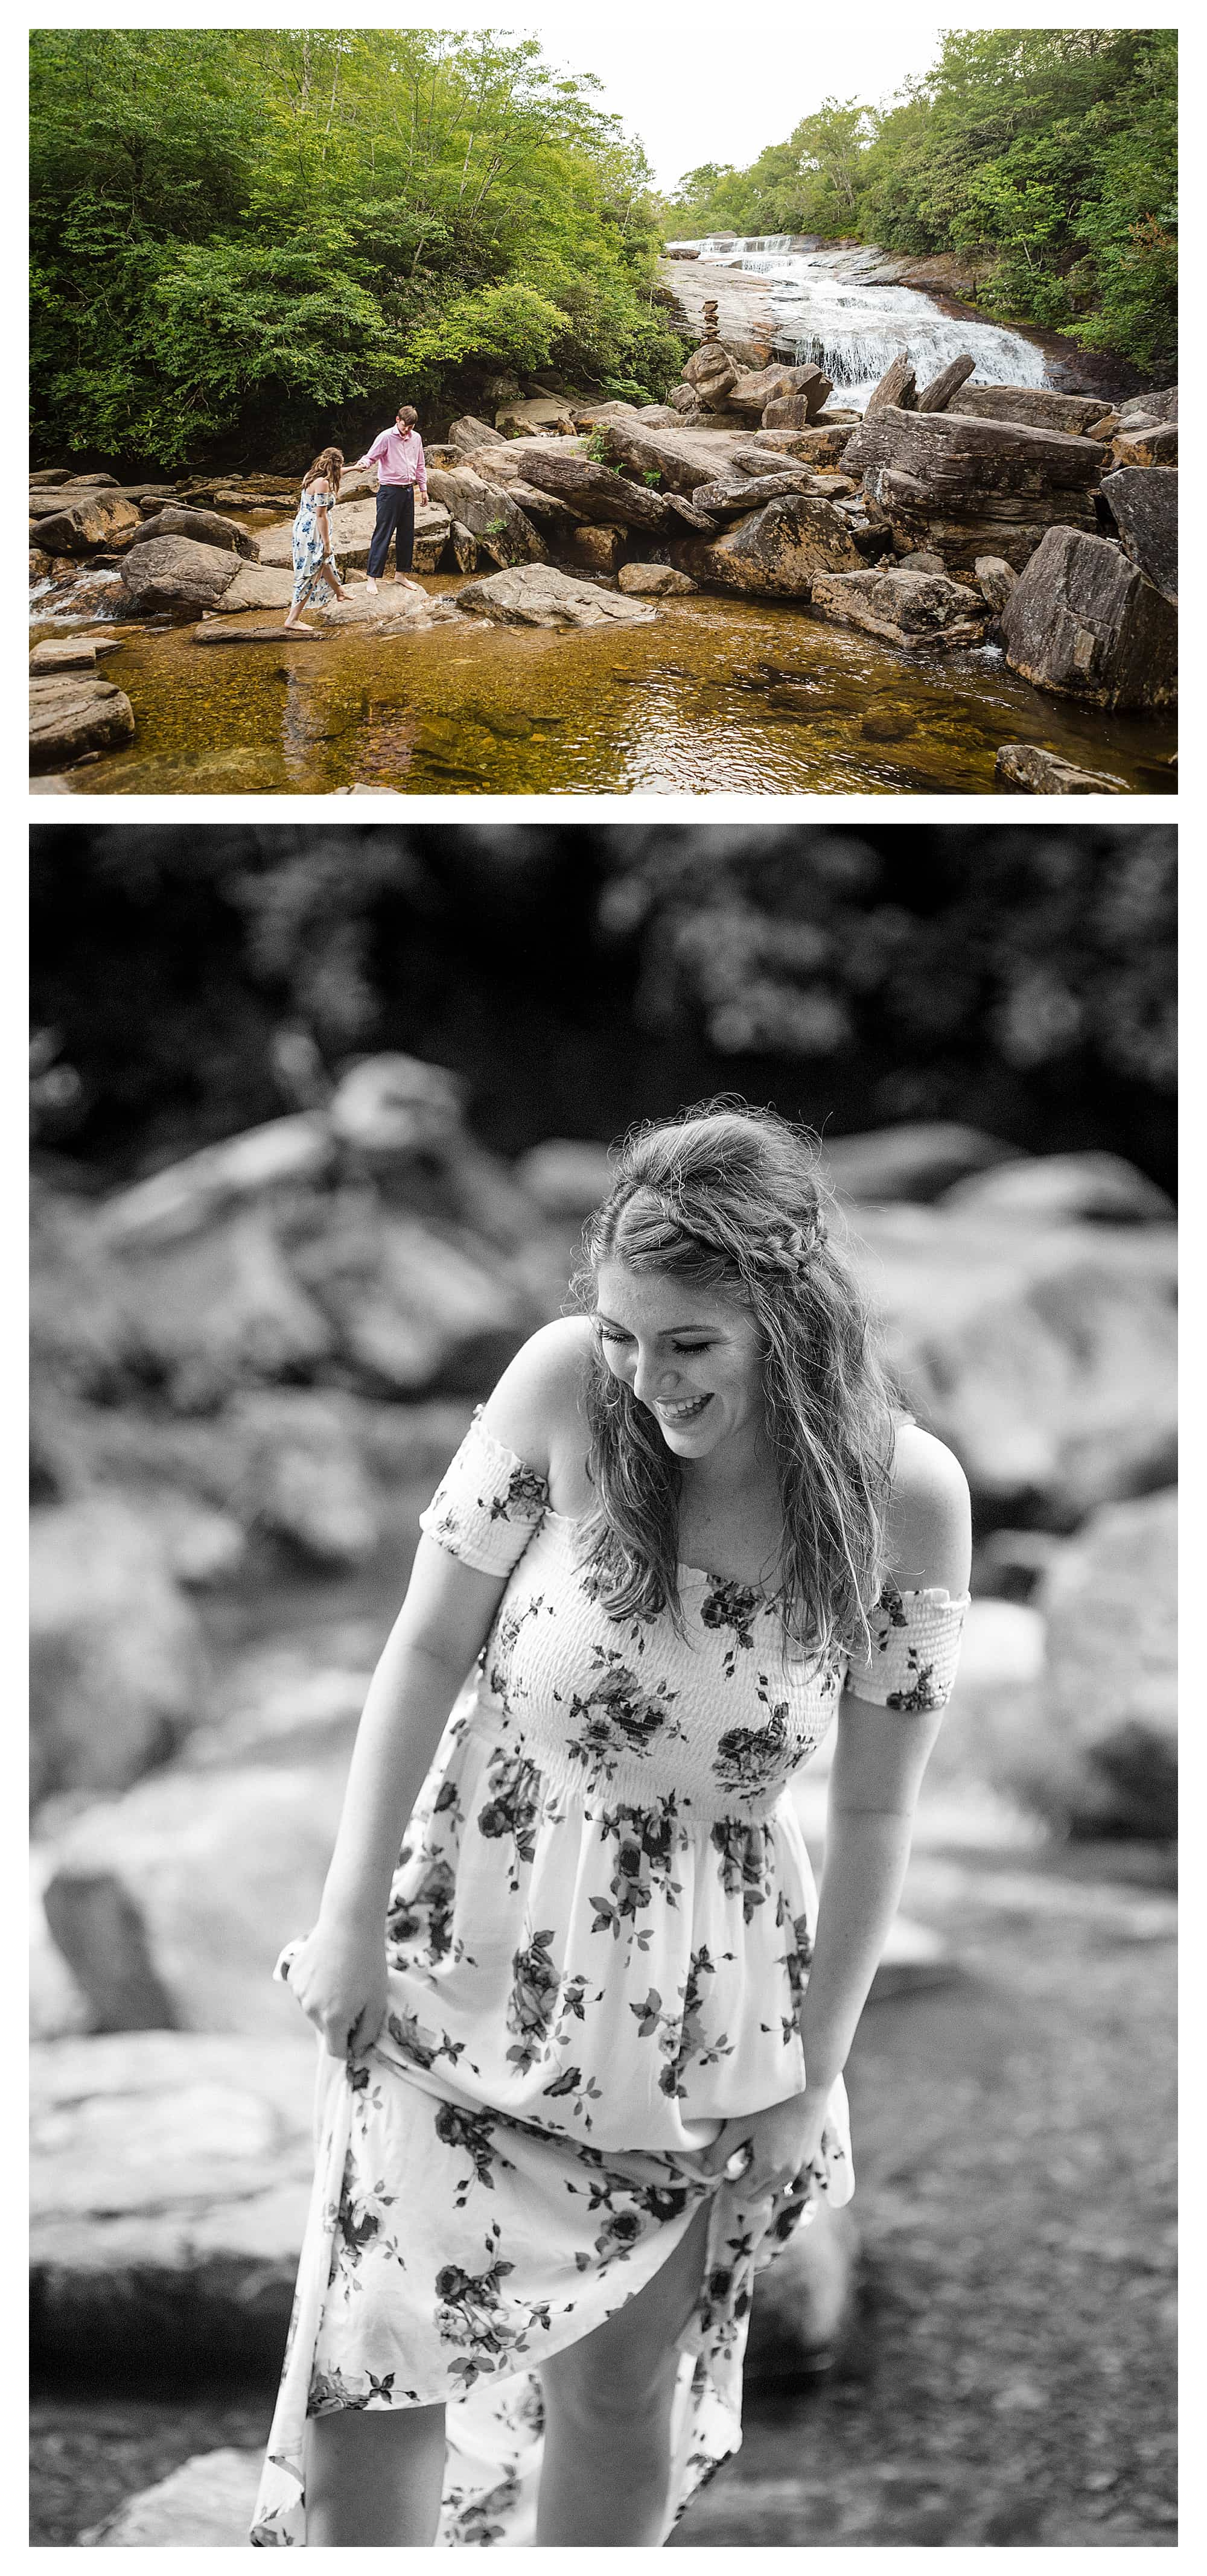 Photo of couple embracing on rocks beside calm river / second black and white photo of girl walk along rocks by river wearing white floral dress smiling